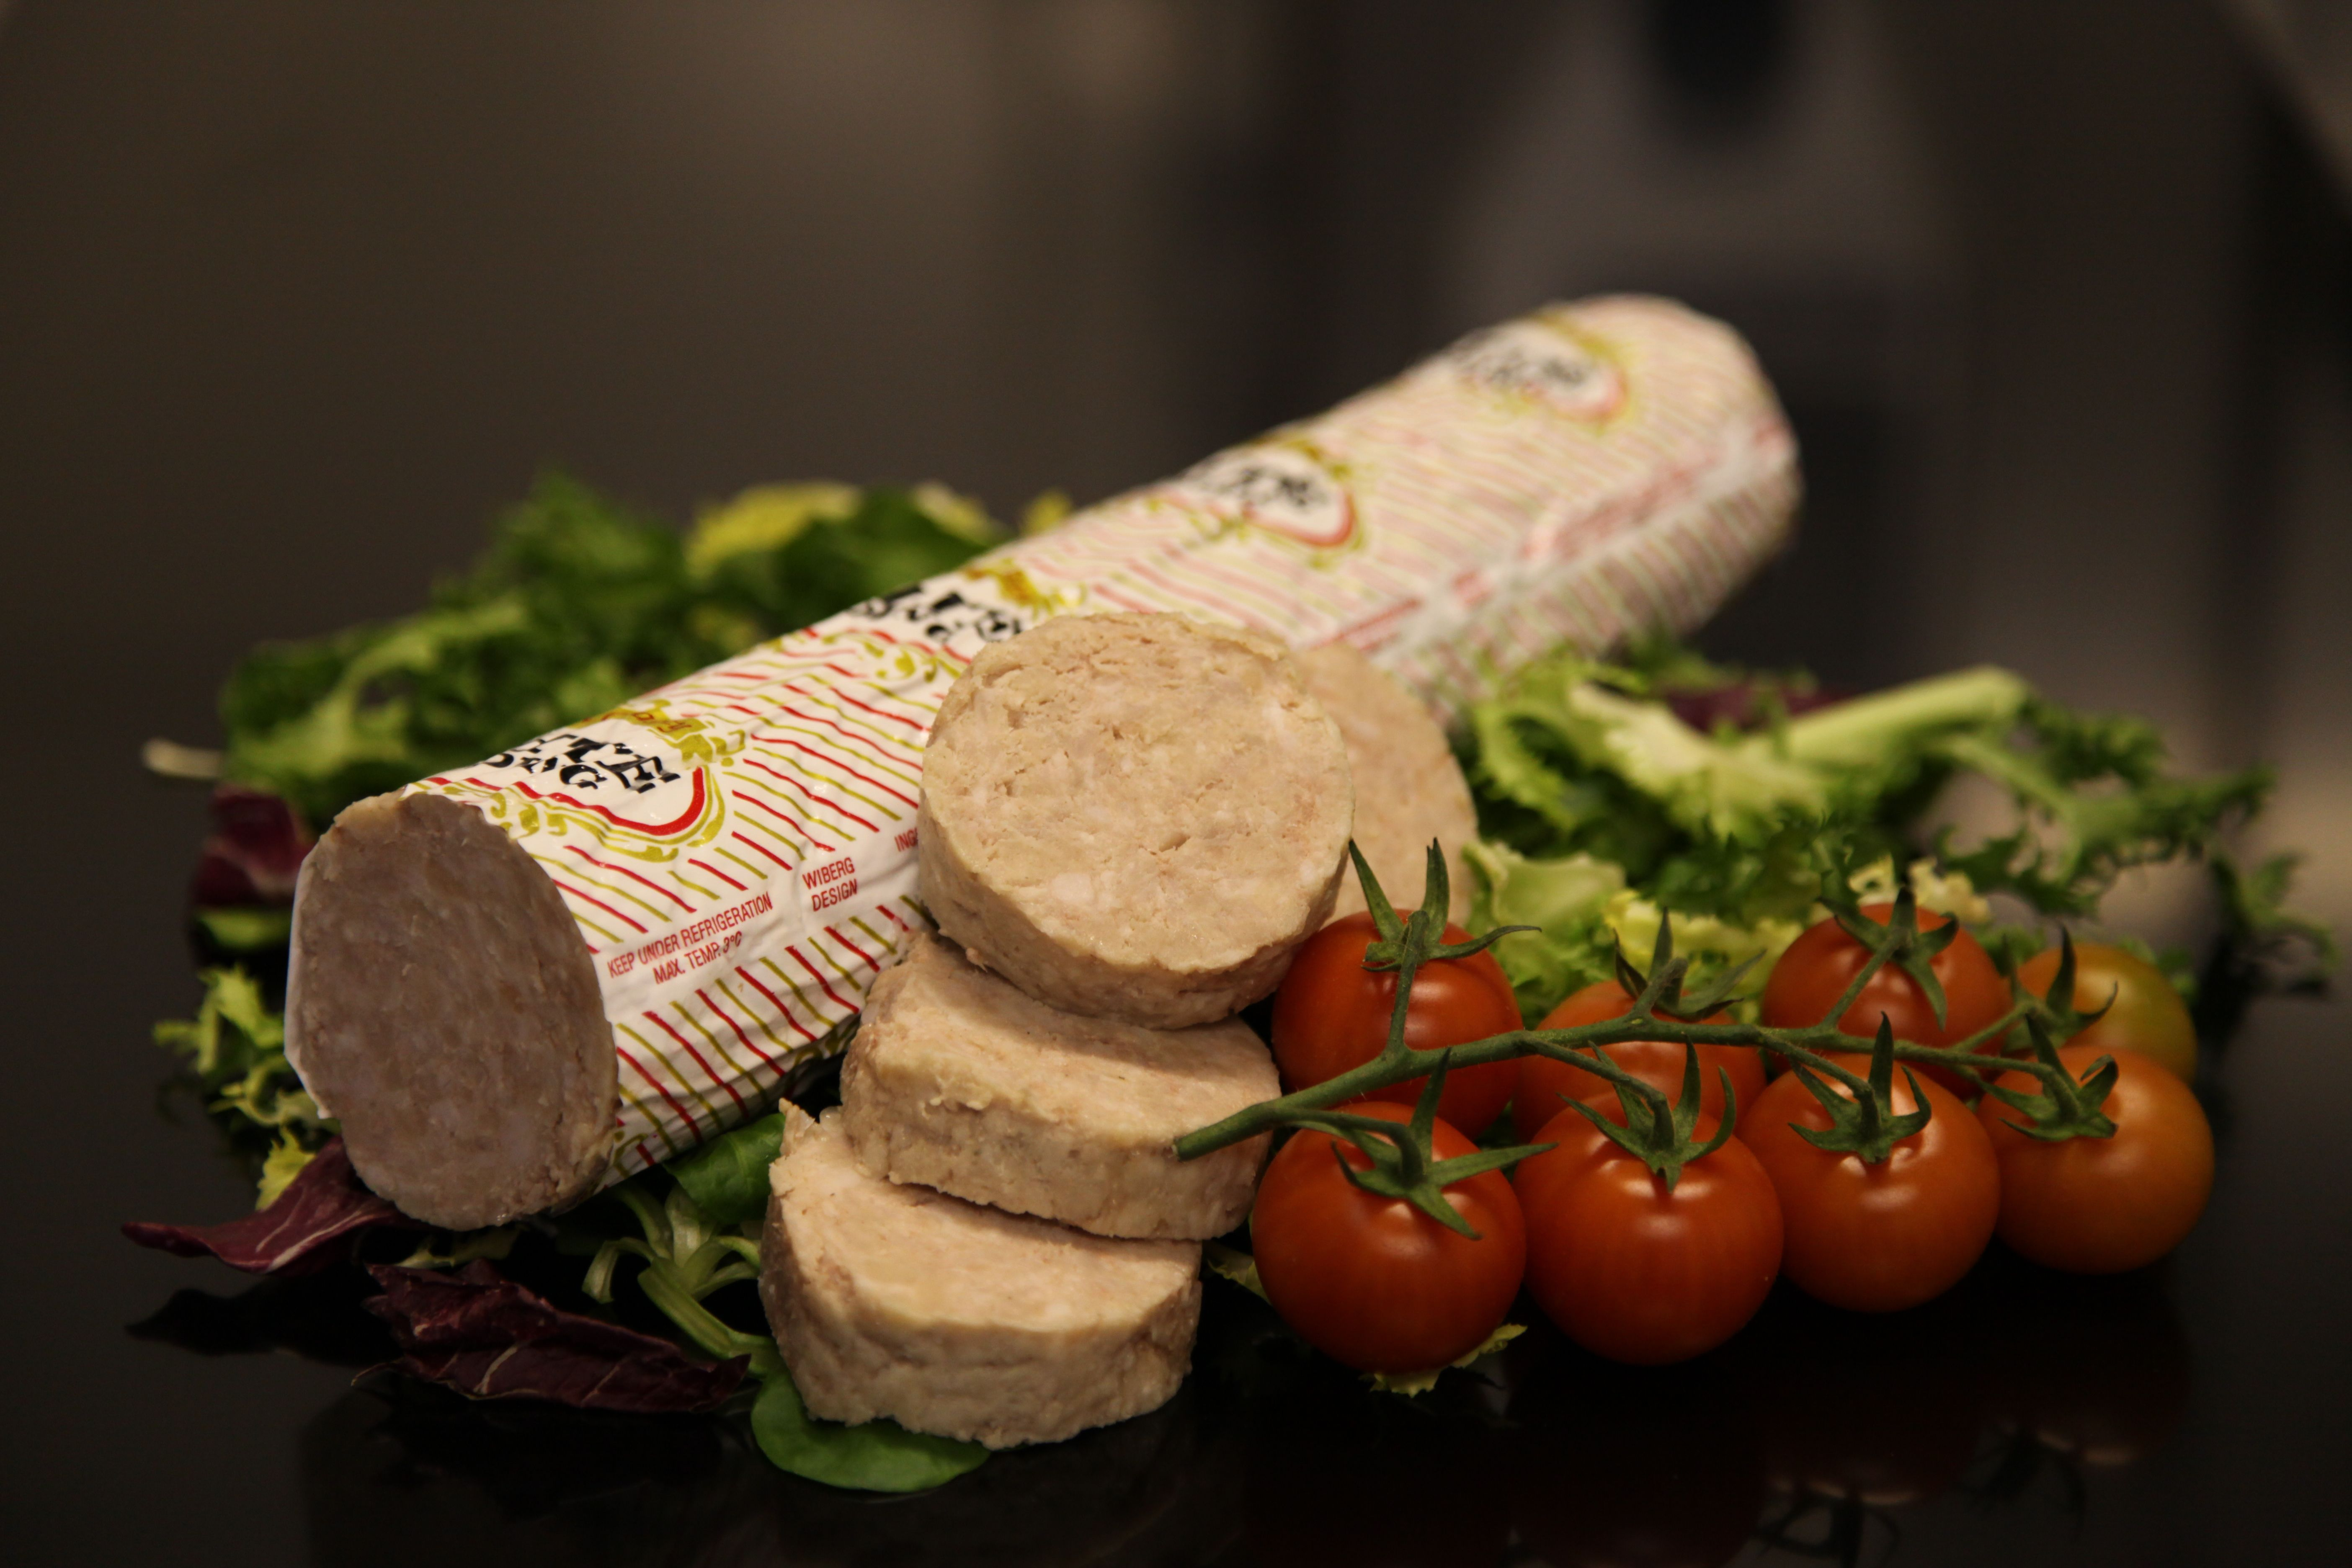 White Pudding made by McCartney's